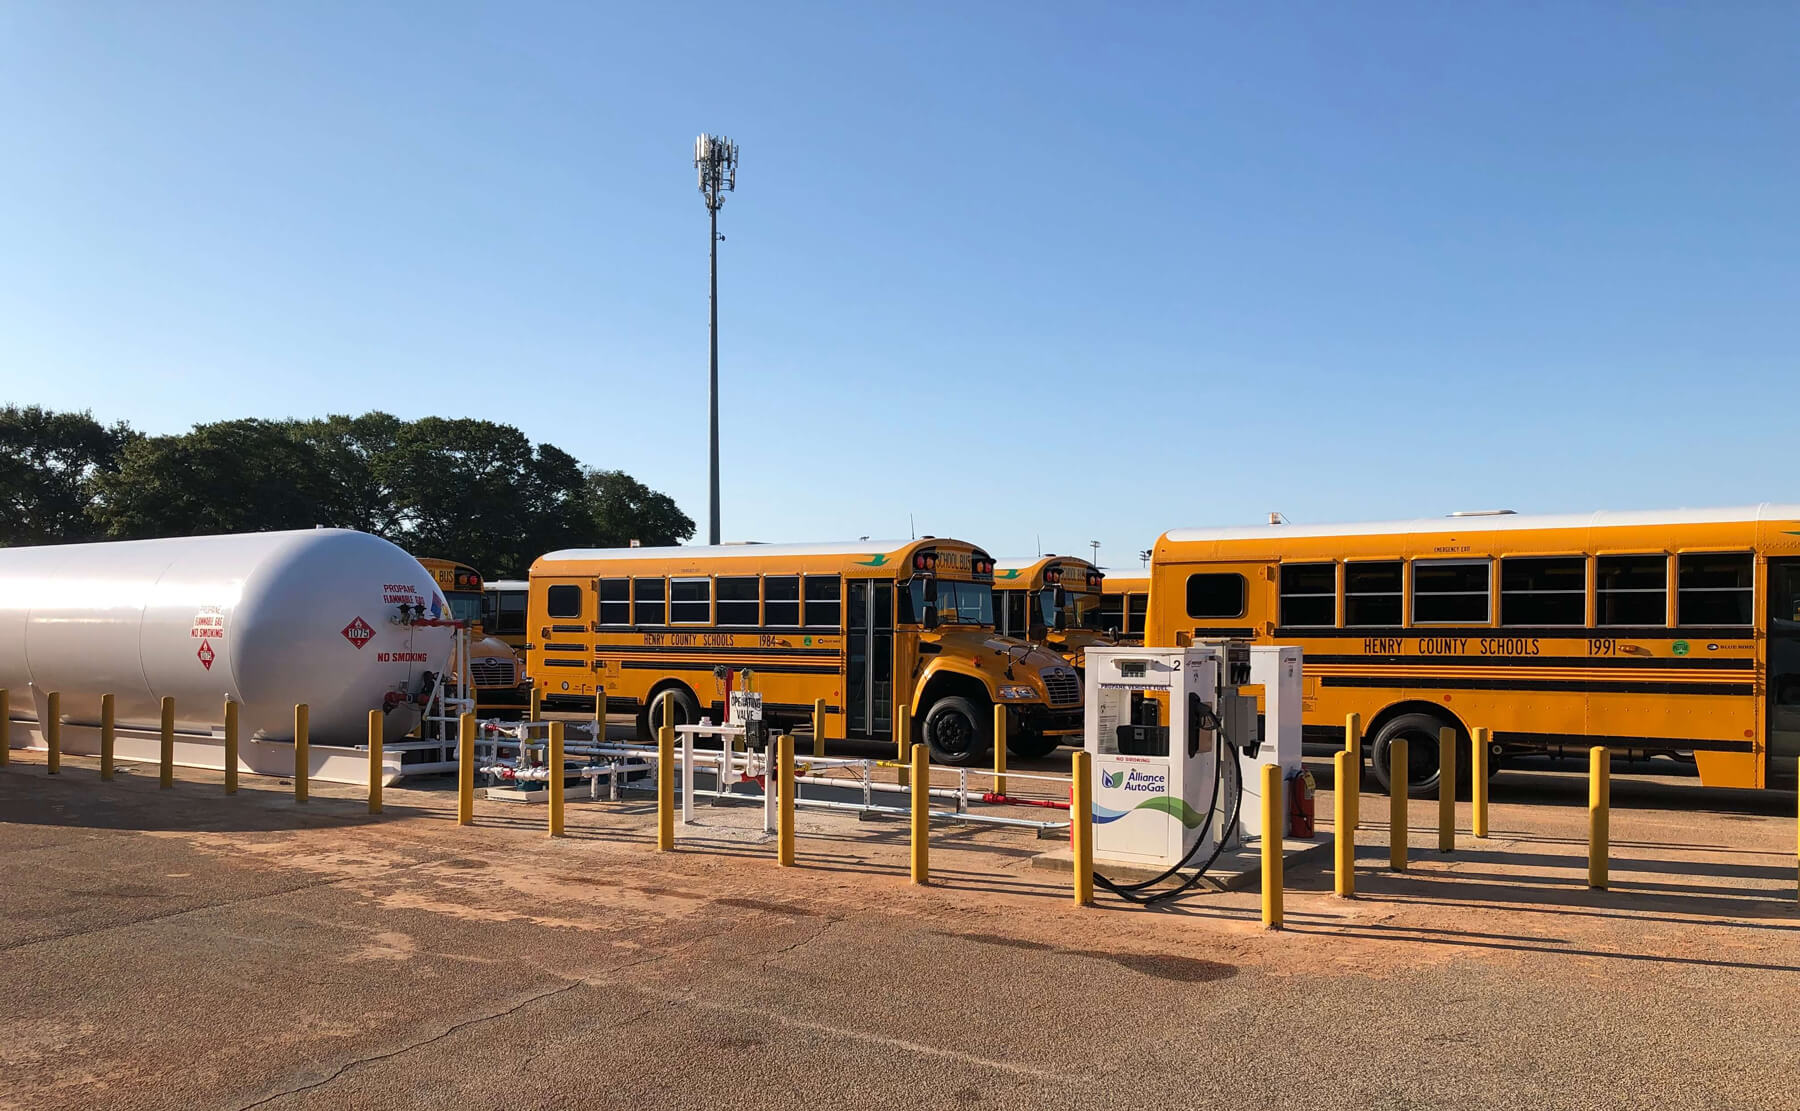 Propane Autogas refueling infrastructure for school buses owned by Henry County Schools in Atlanta